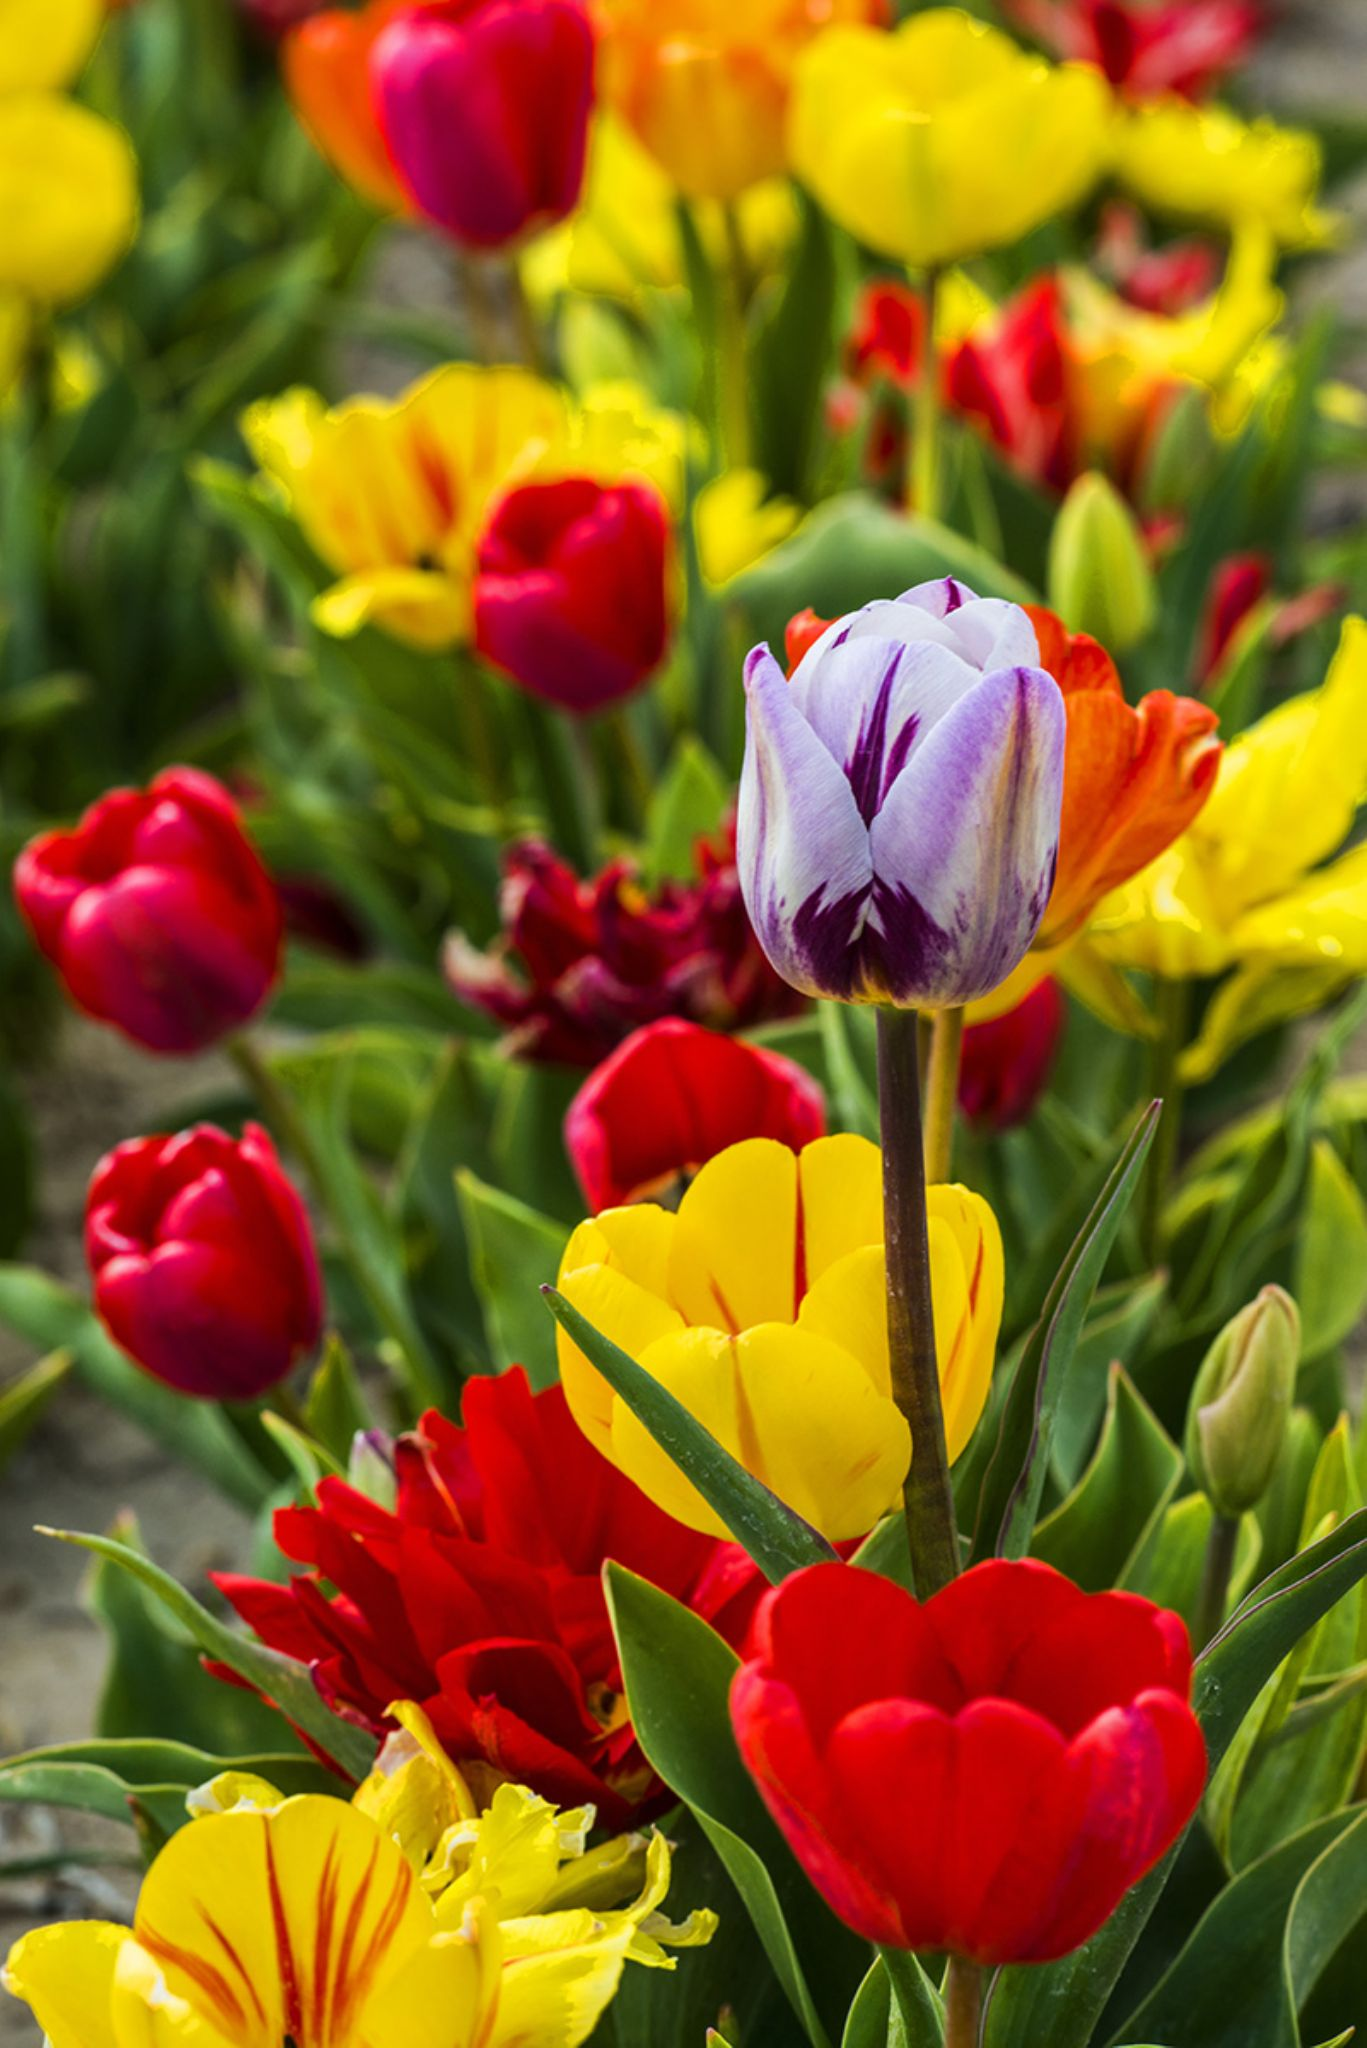 Tulips by mustafaozdemirphotography